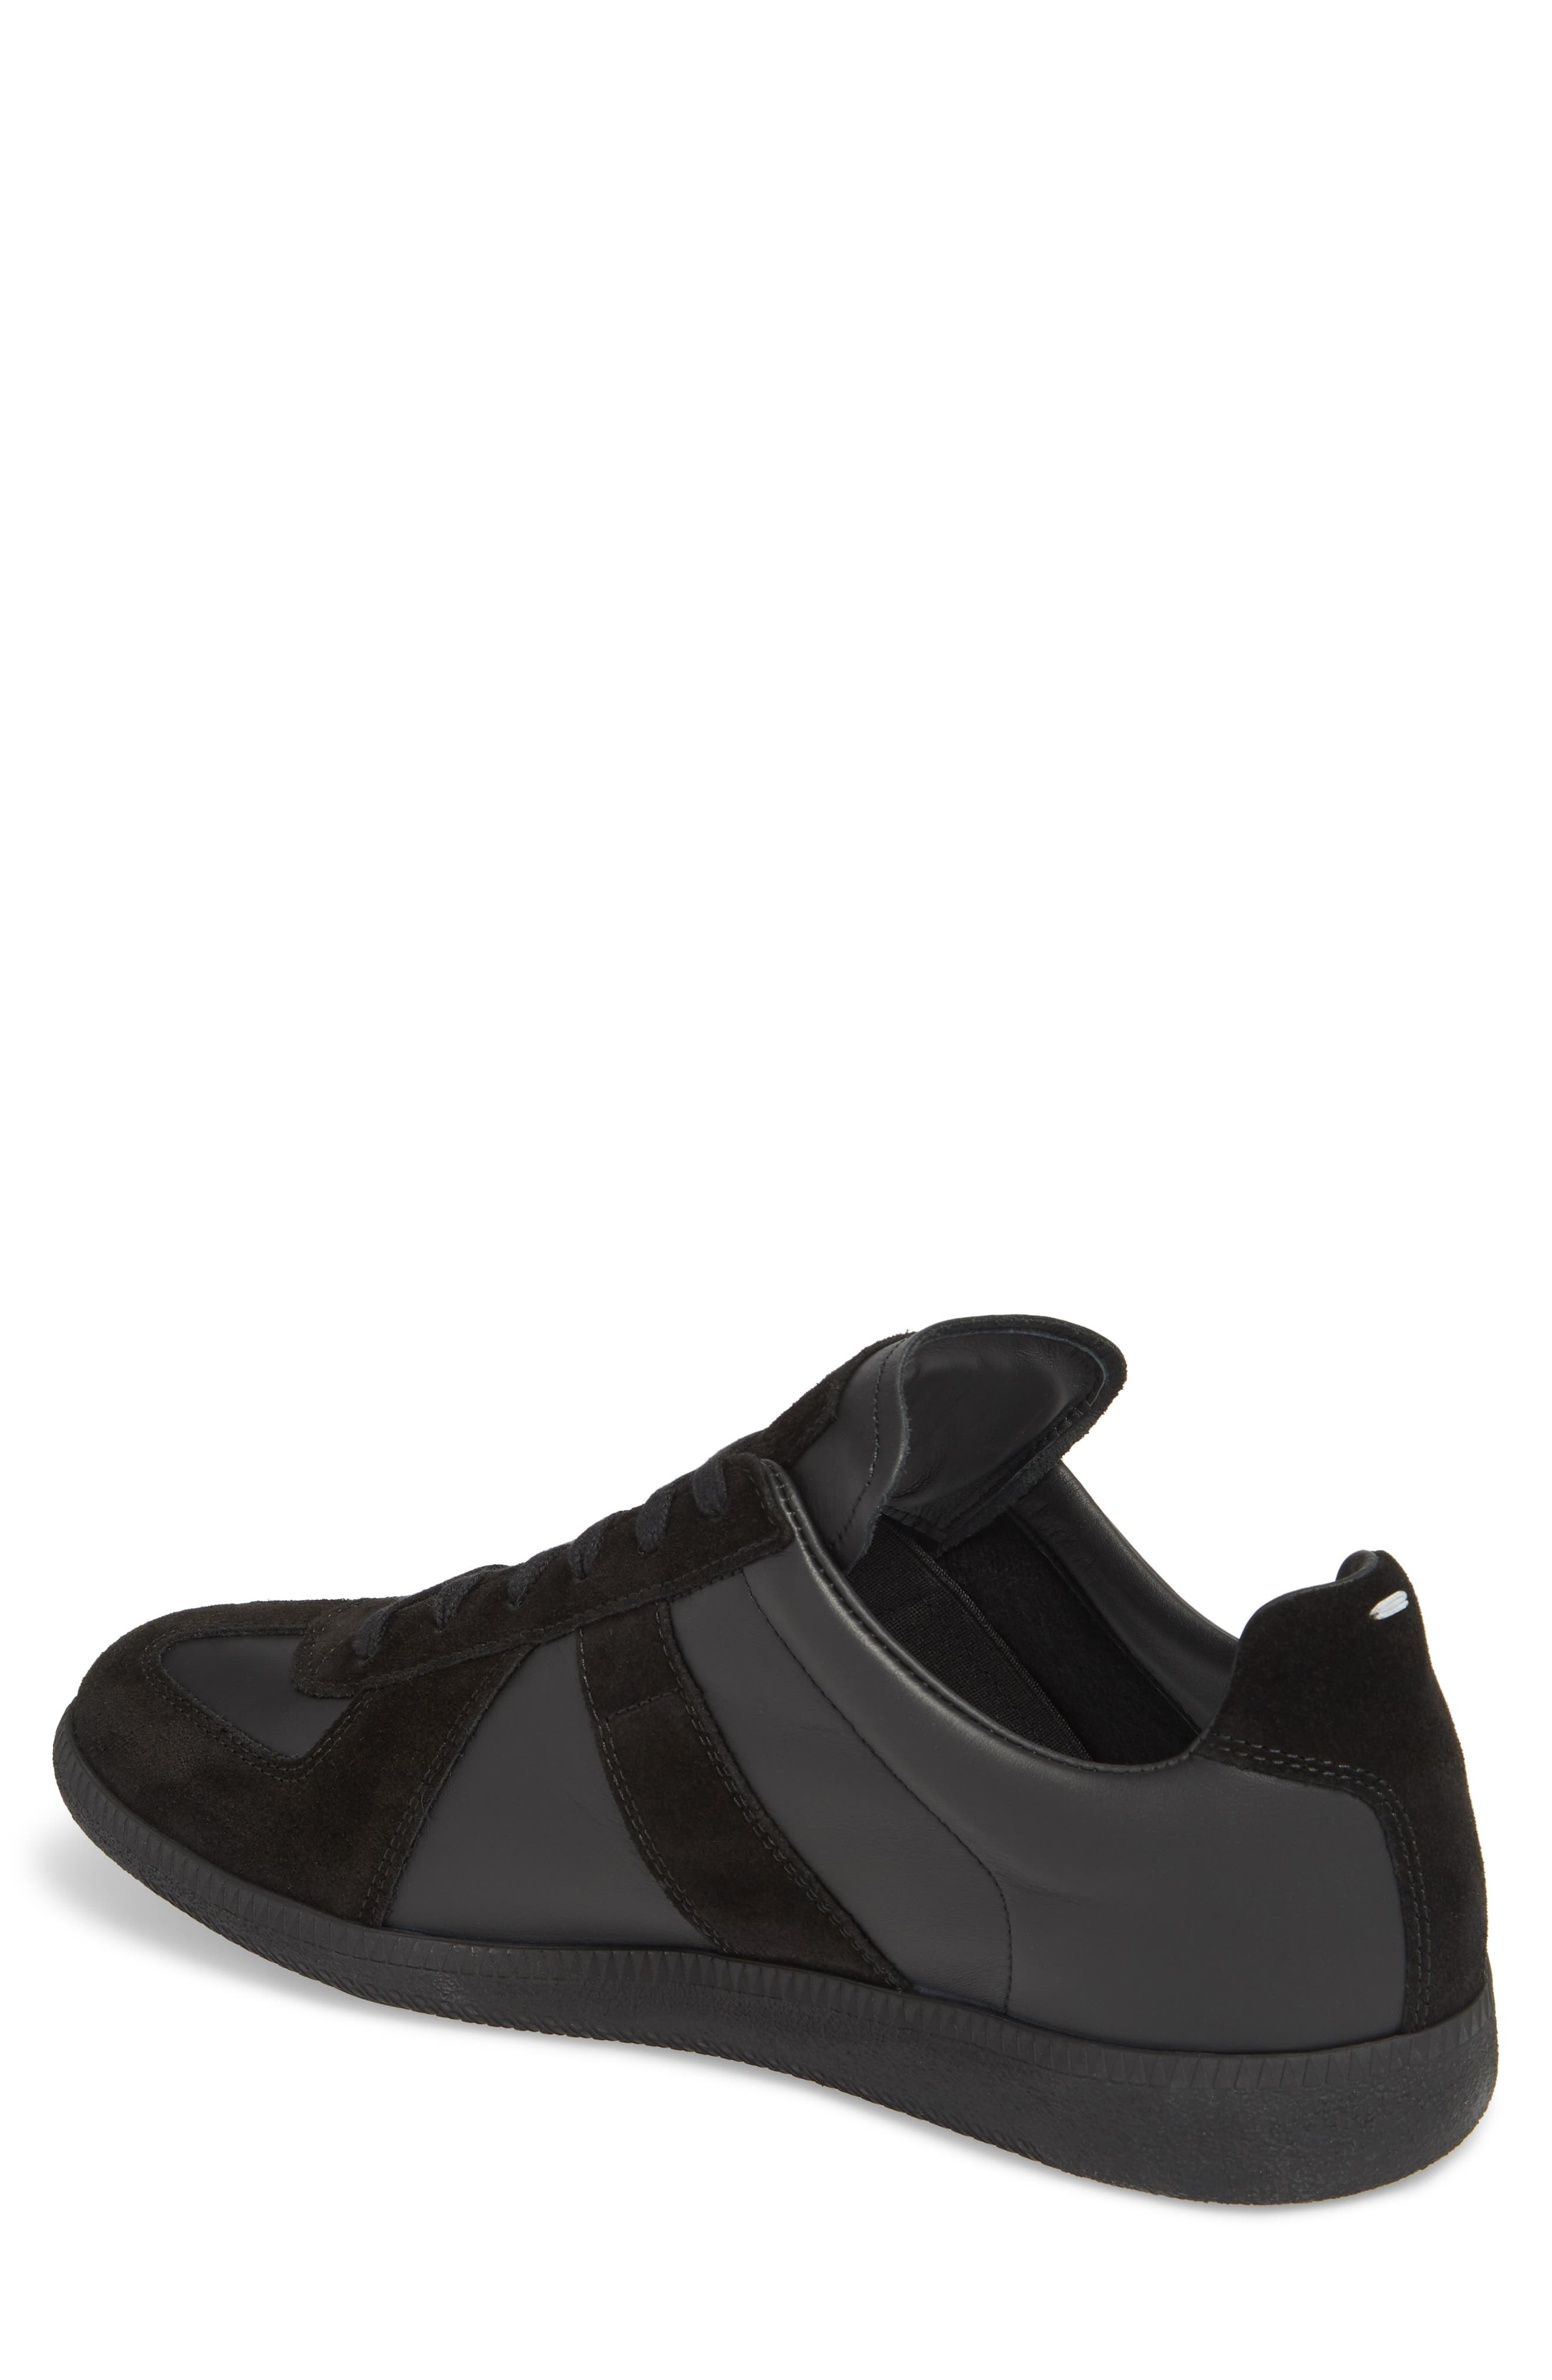 Maison Margiela Replica Low Top Sneaker,                             Alternate thumbnail 2, color,                             BLACK